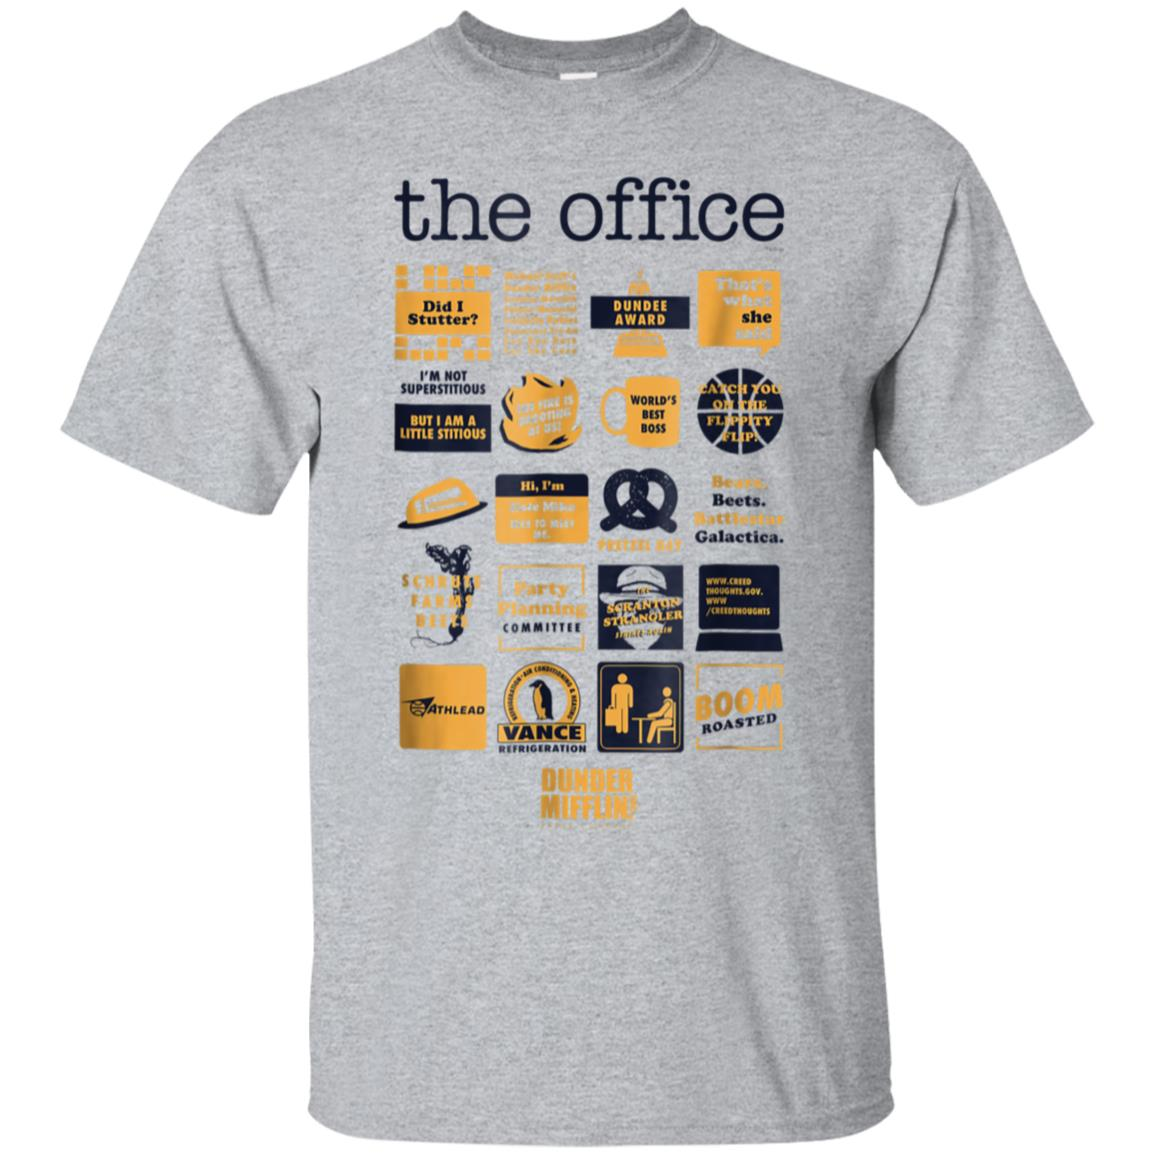 The Office Quote Mash-Up Funny T-Shirt - Official Tee 99promocode